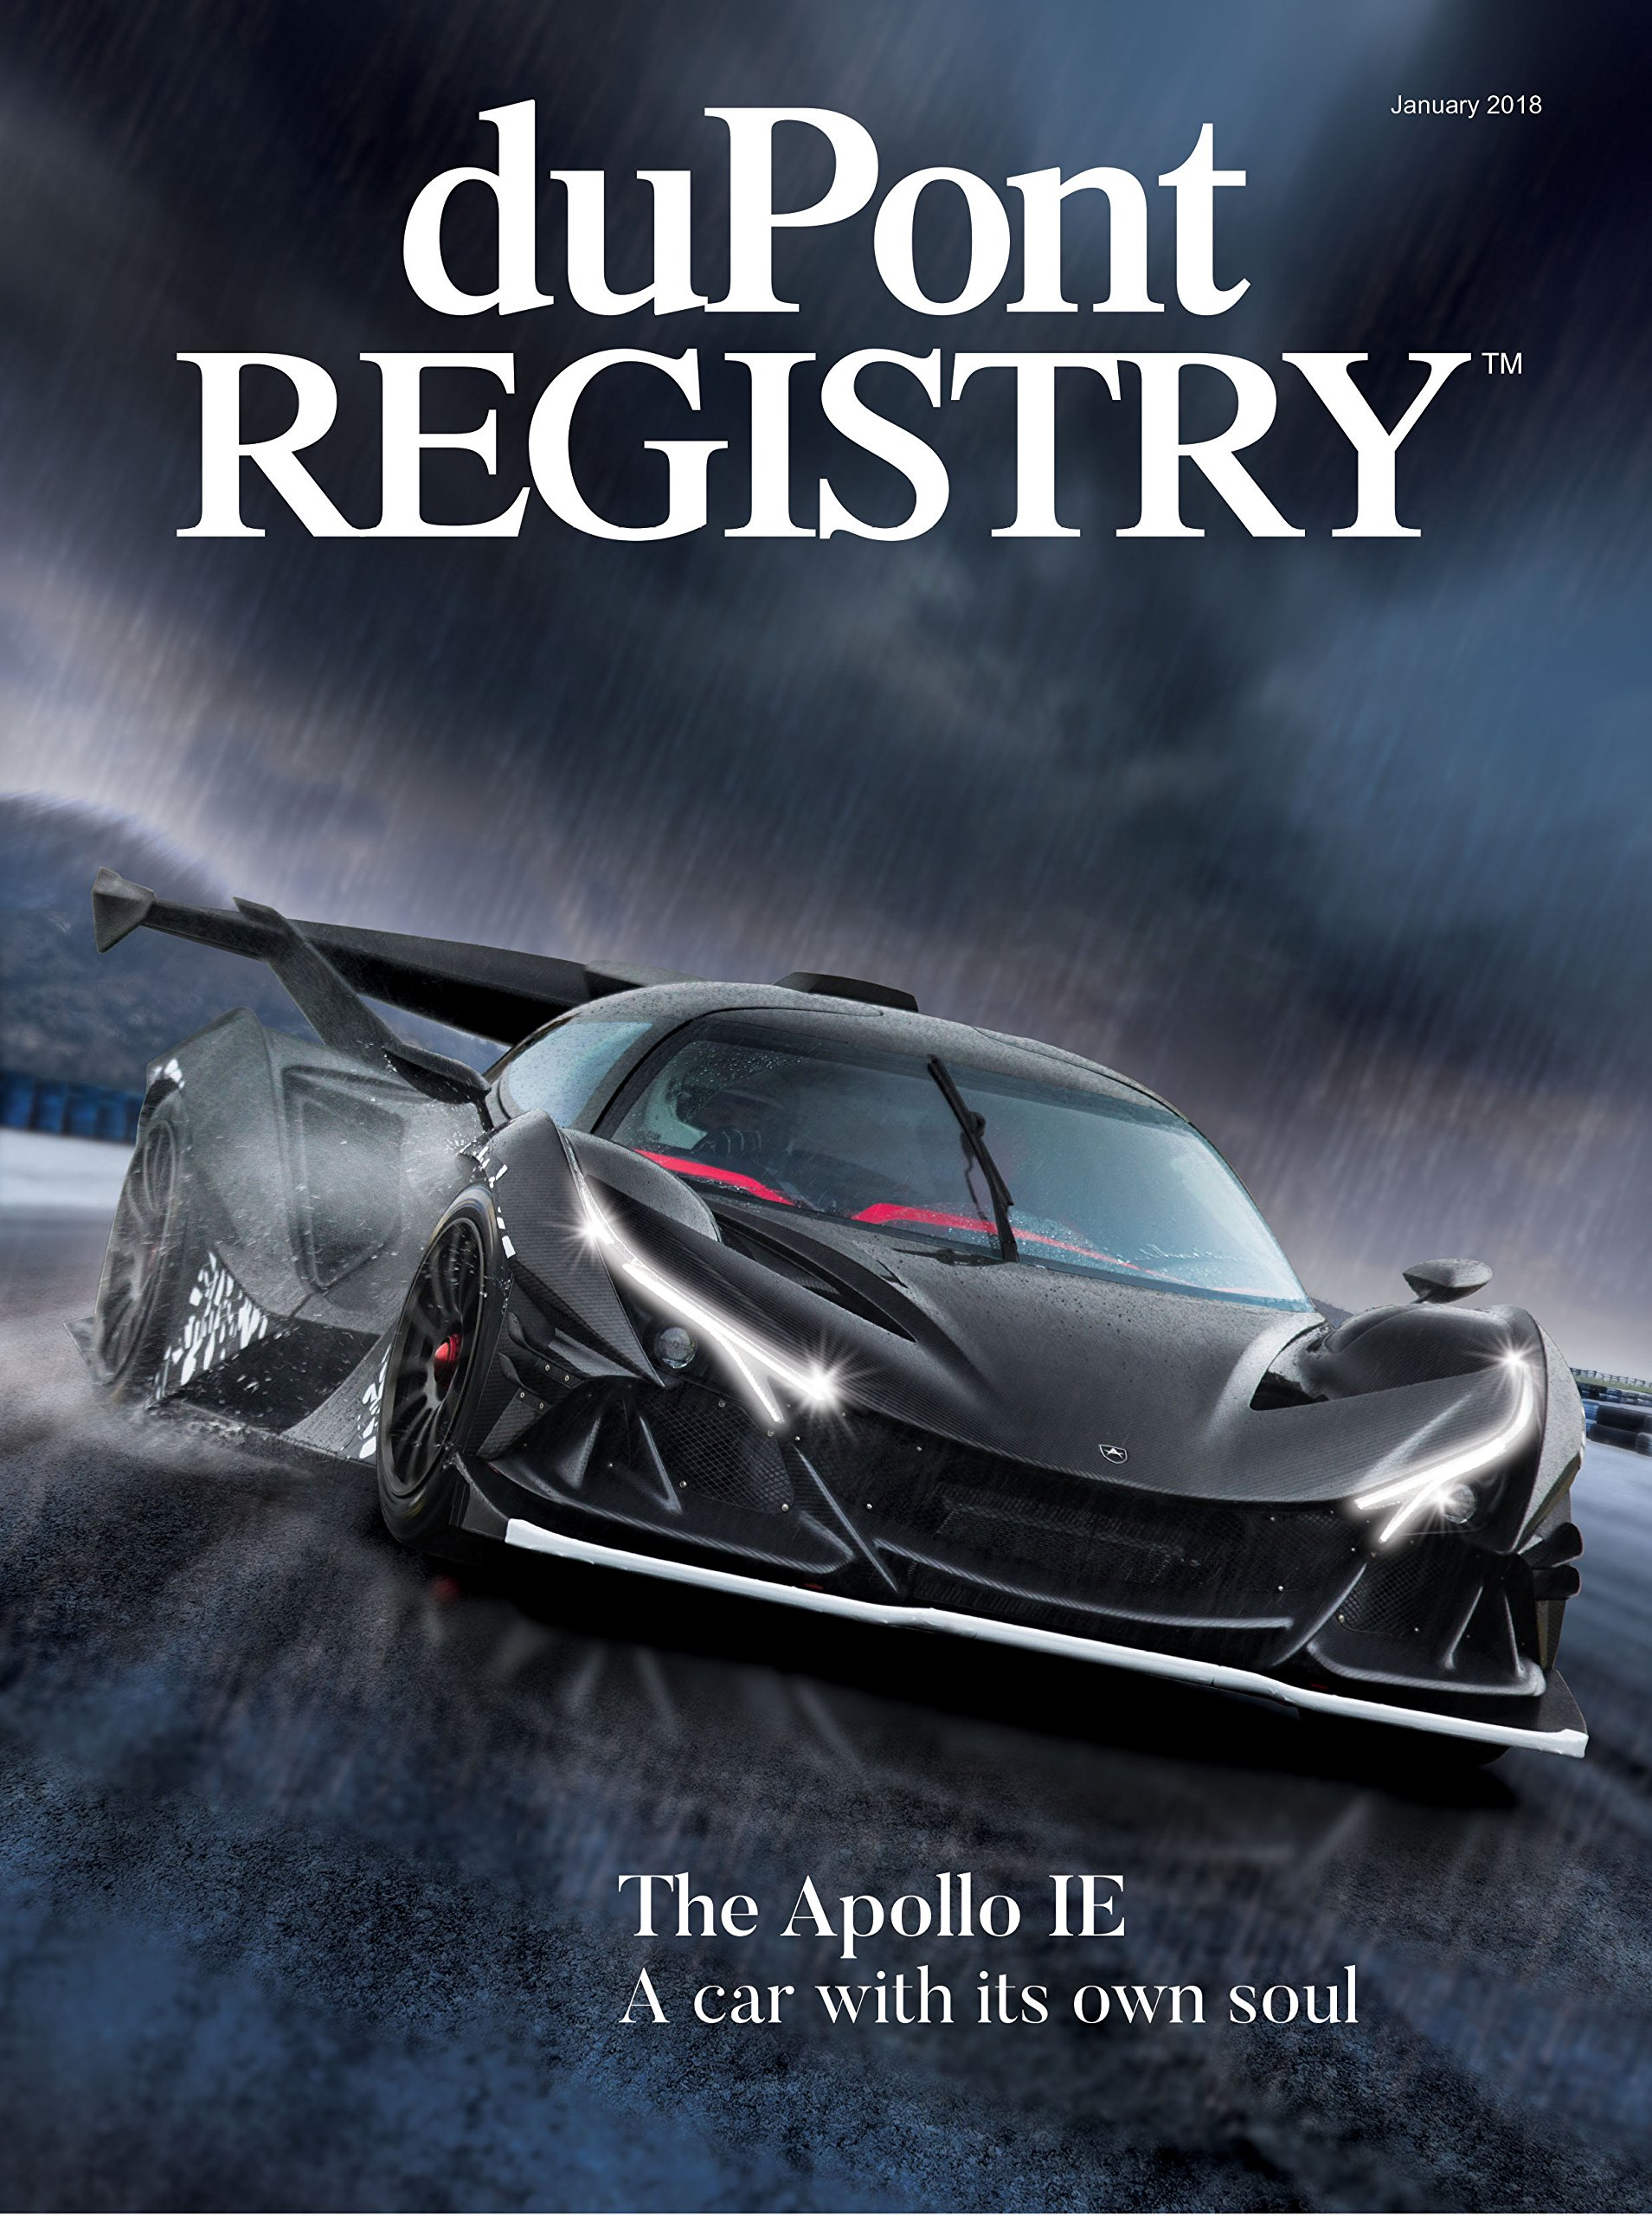 Dupont Registry Autos January 2018 Dupont Registry Amazon Com Books